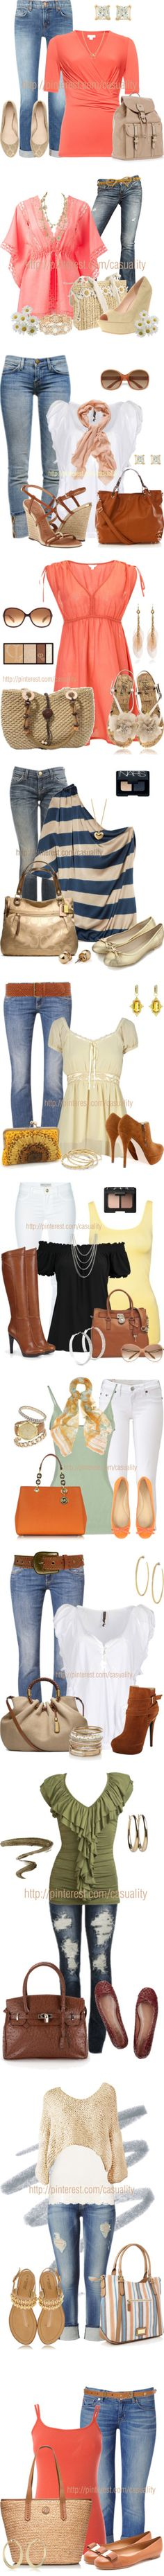 """Casual Looks"" by casuality on Polyvore"